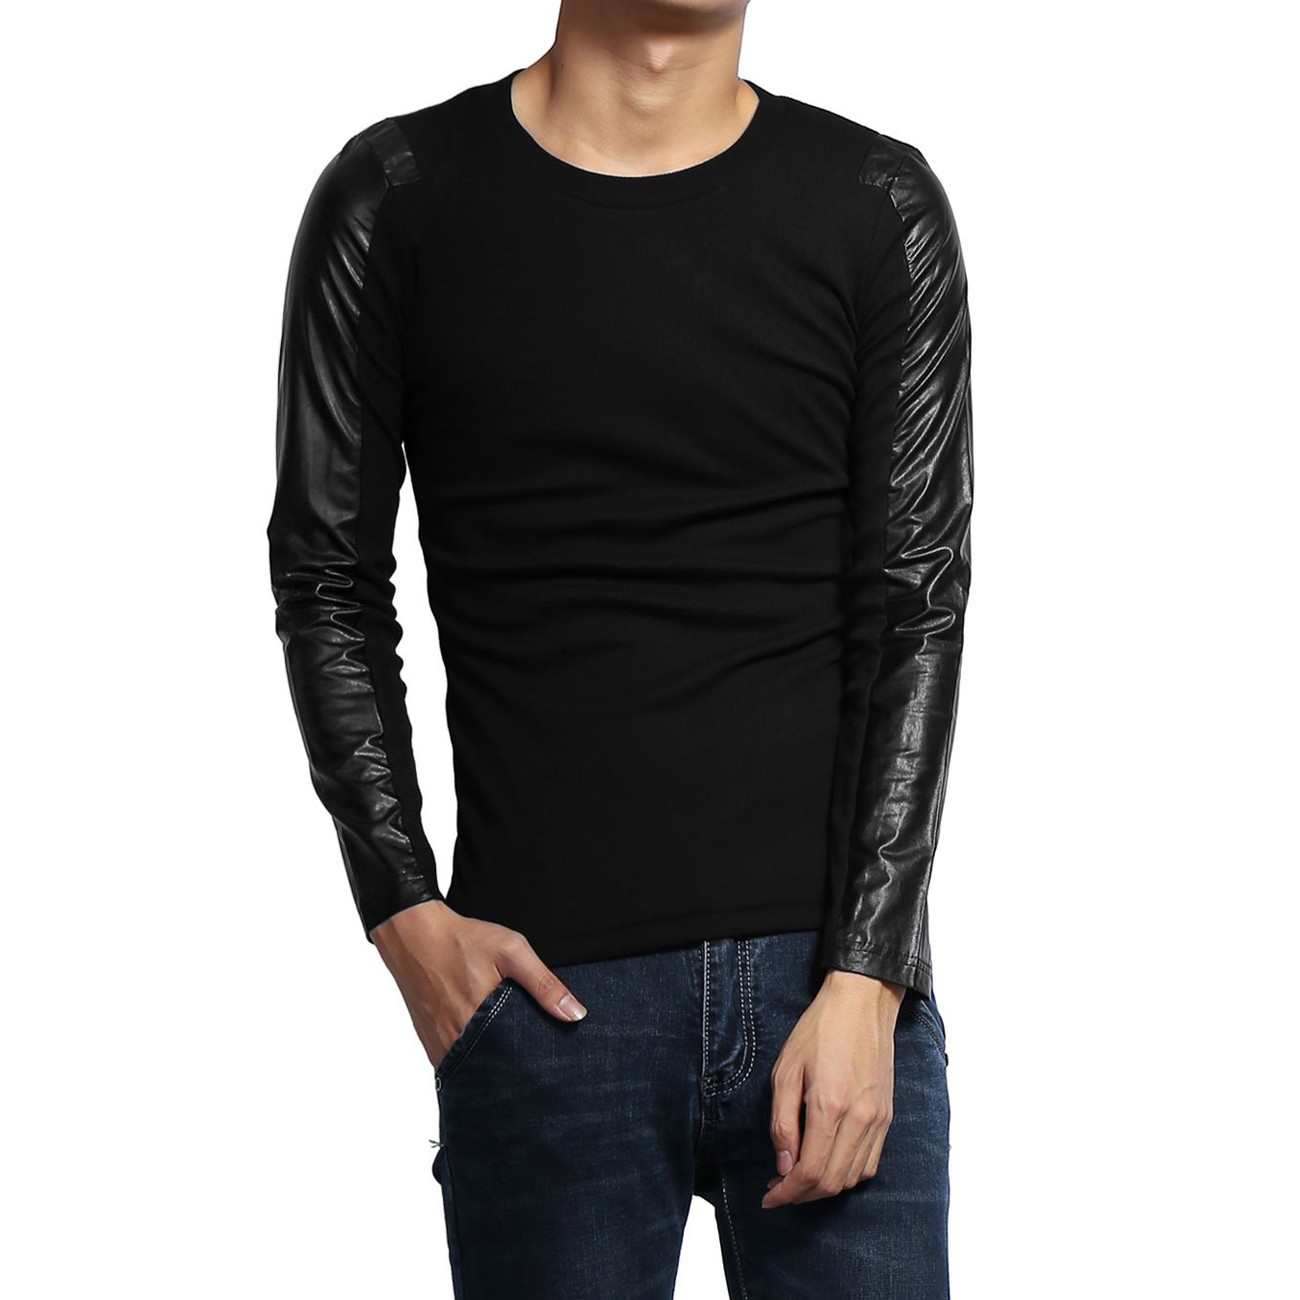 Mens Long Sleeve T Shirts Leather Sleeves Round Neck Shirt